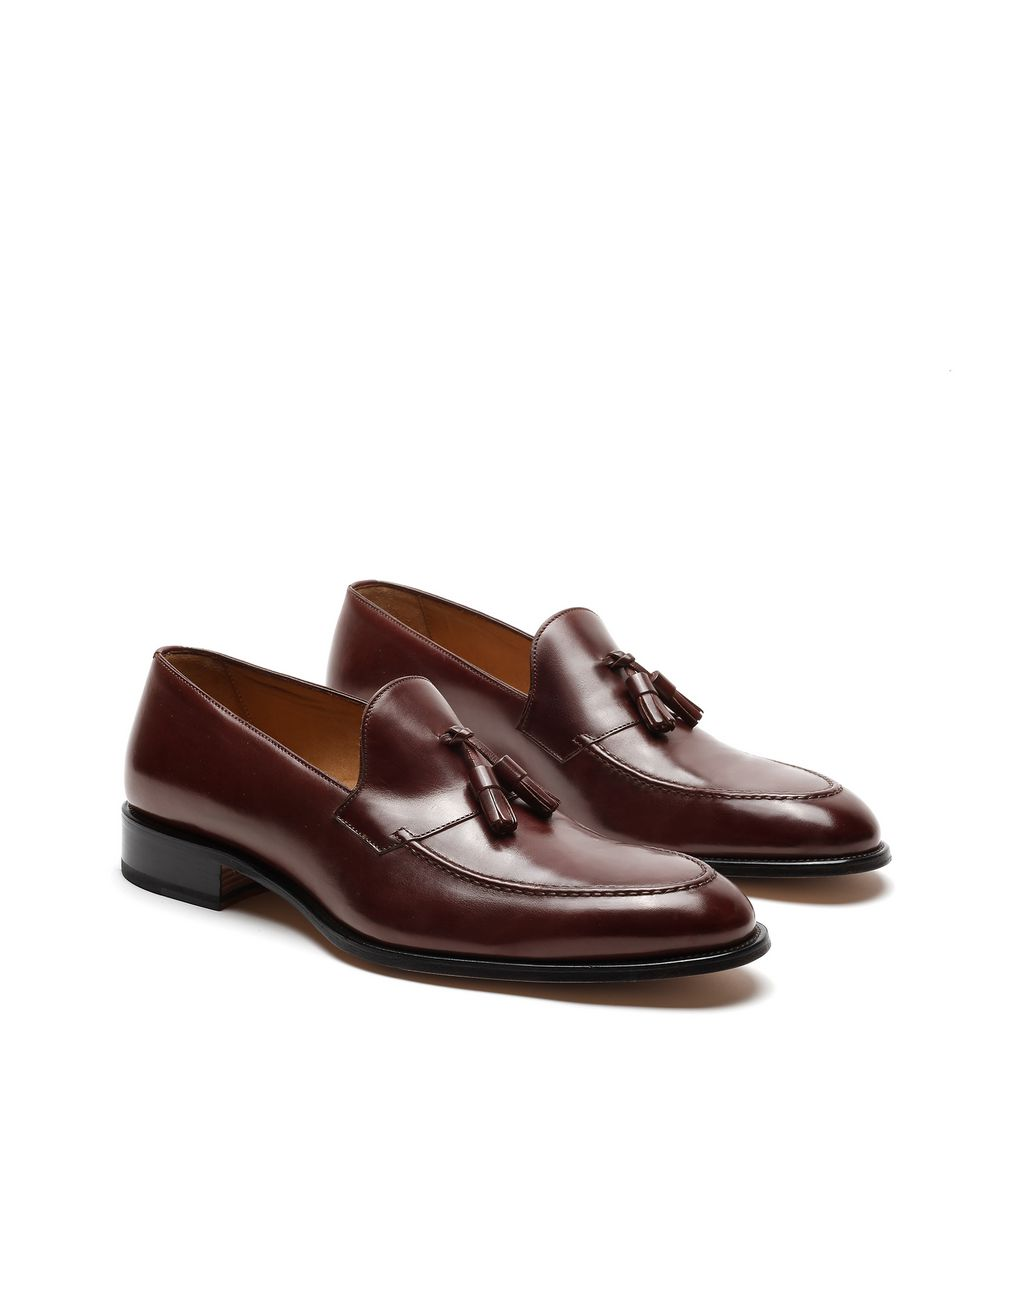 BRIONI Mocassini Marroni con Nappe Mocassino [*** pickupInStoreShippingNotGuaranteed_info ***] d